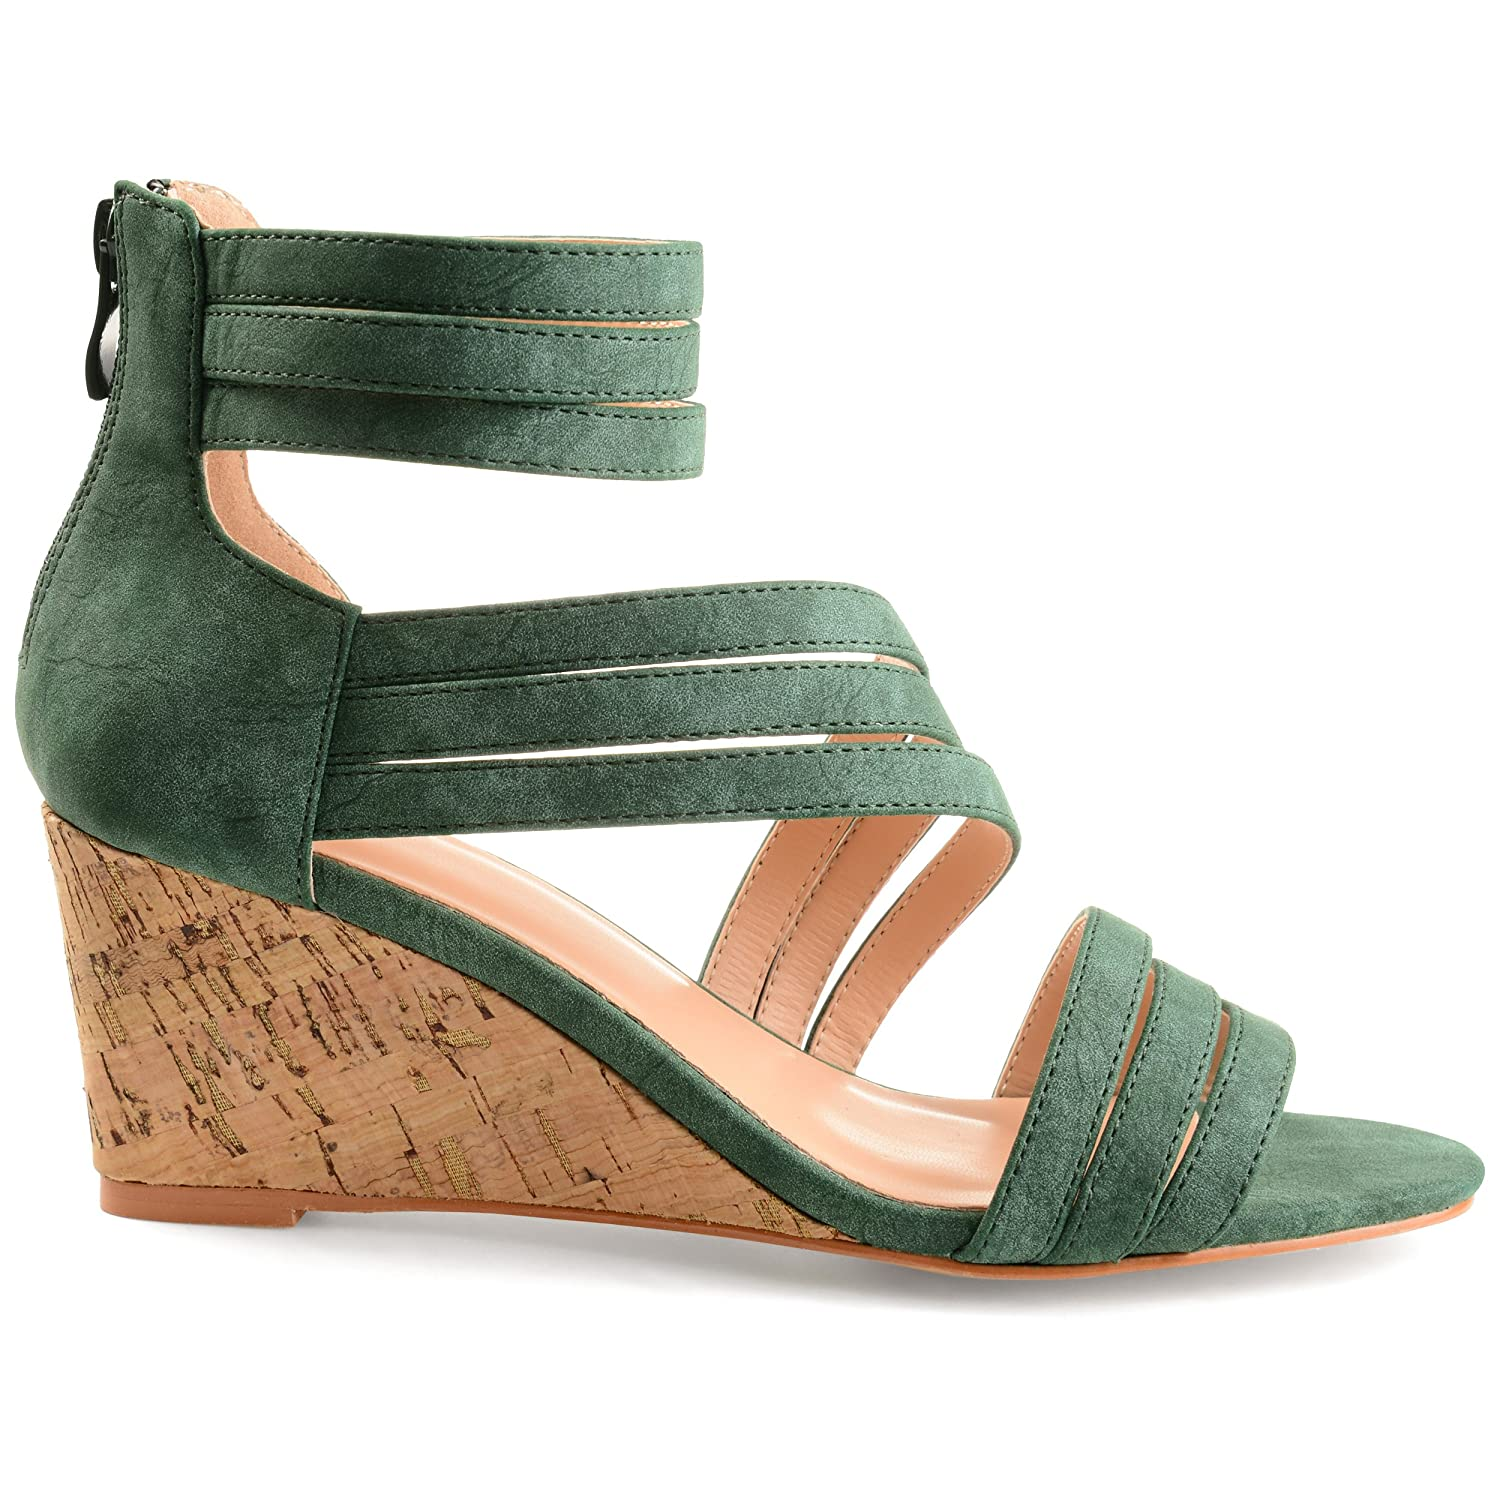 4c684c30677 Womens Lacey Strappy Faux Leather Faux Cork Wedges